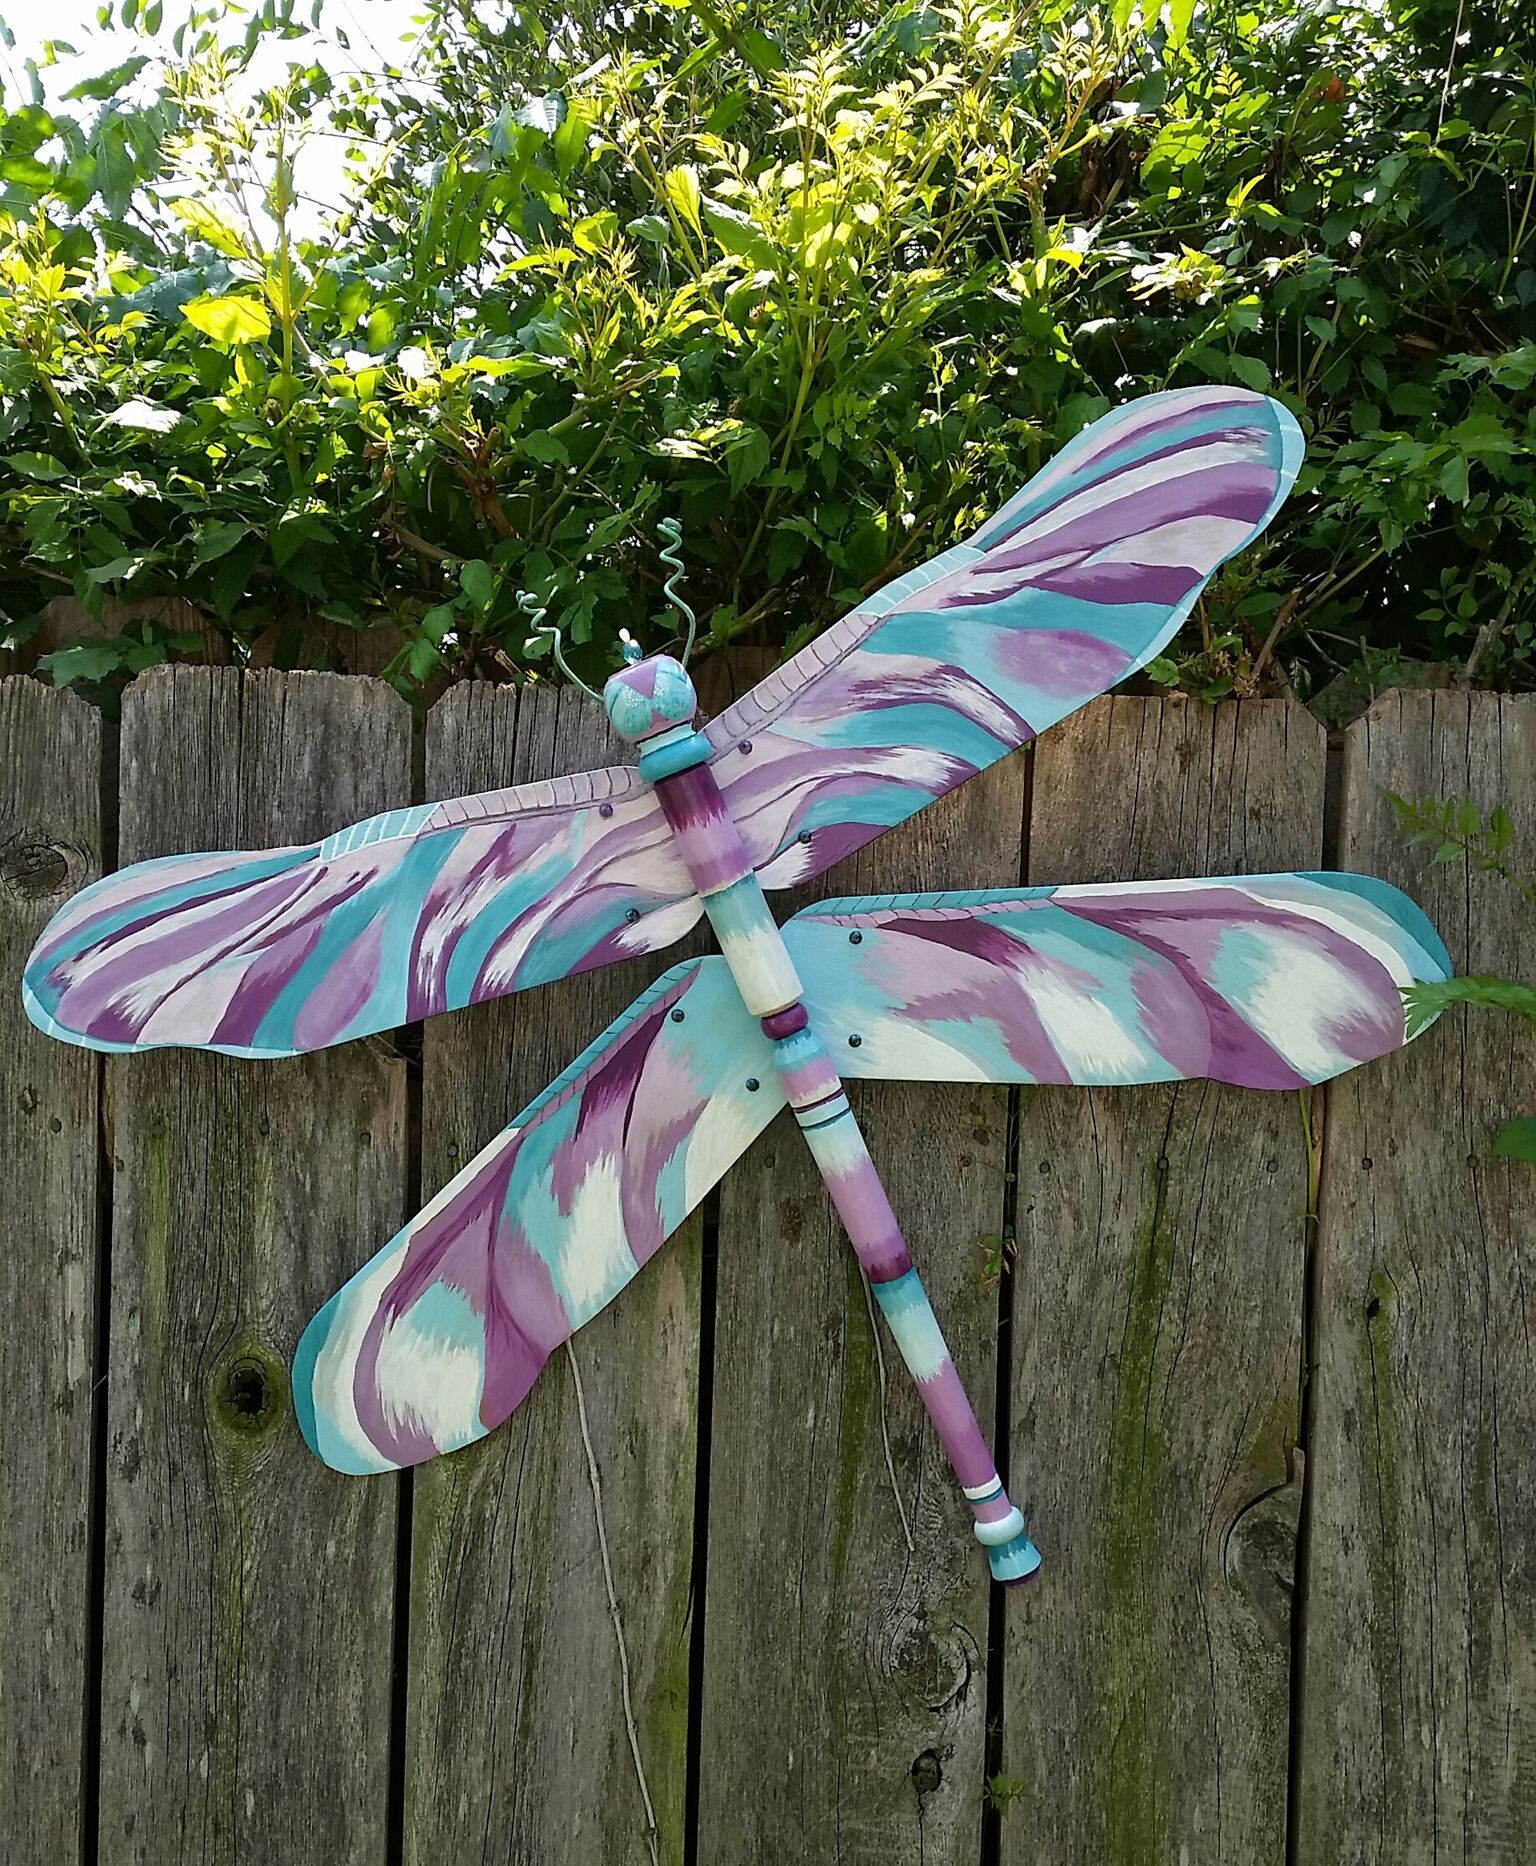 Dragonfly arts and crafts - My First Fan Blade Dragonfly Sold On Etsy This Week